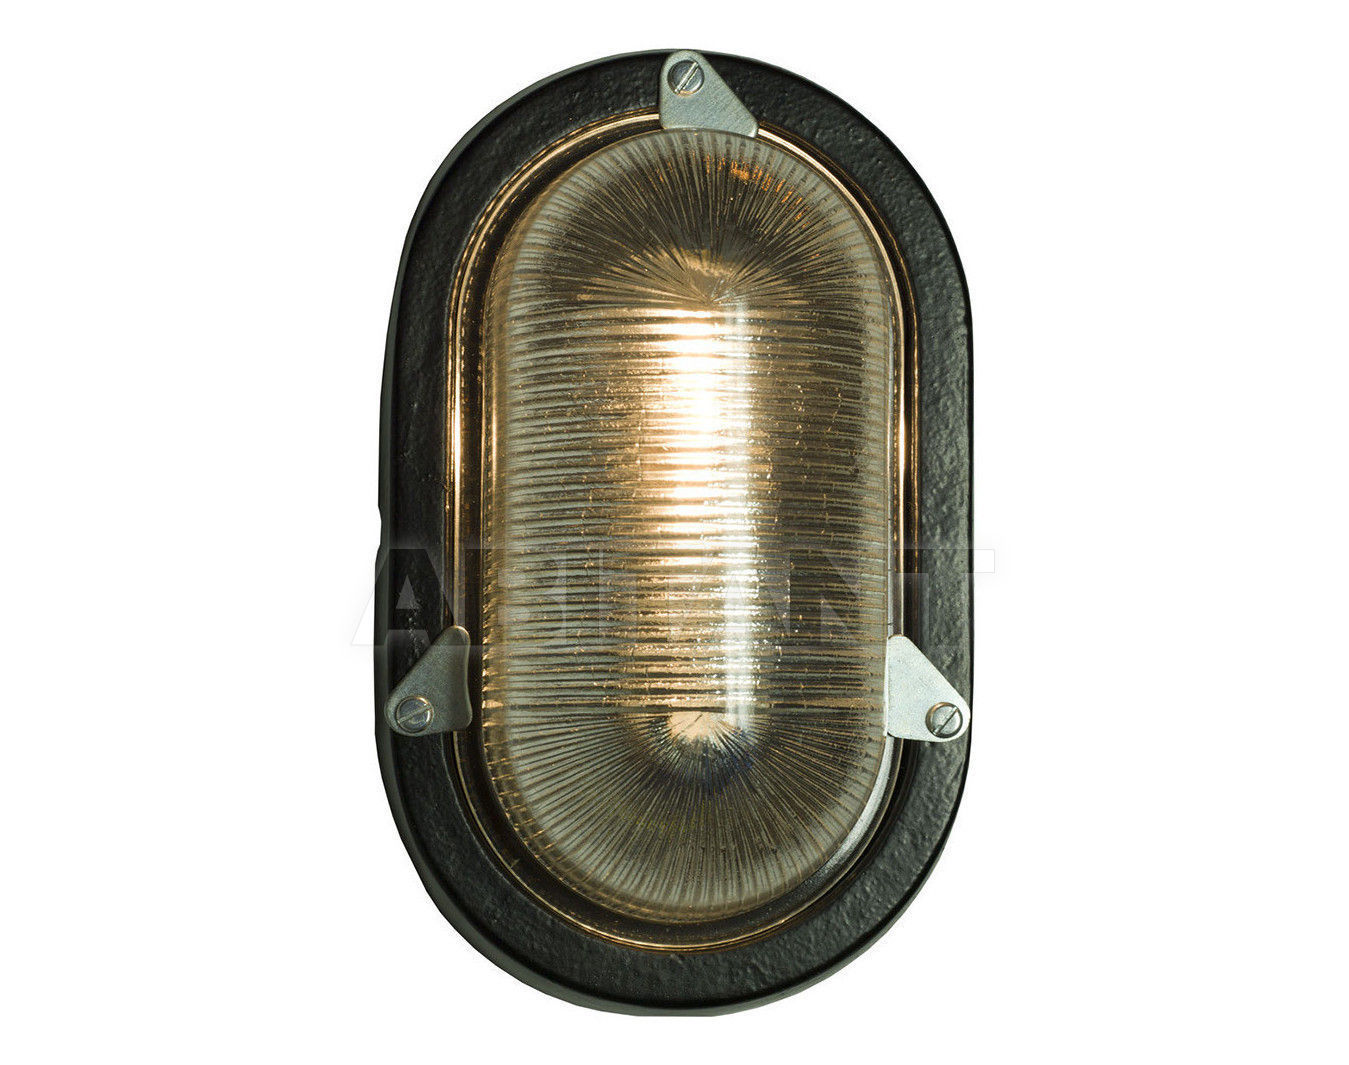 Купить Светильник Davey Lighting Bulkhead Lights 7001/BL/G24